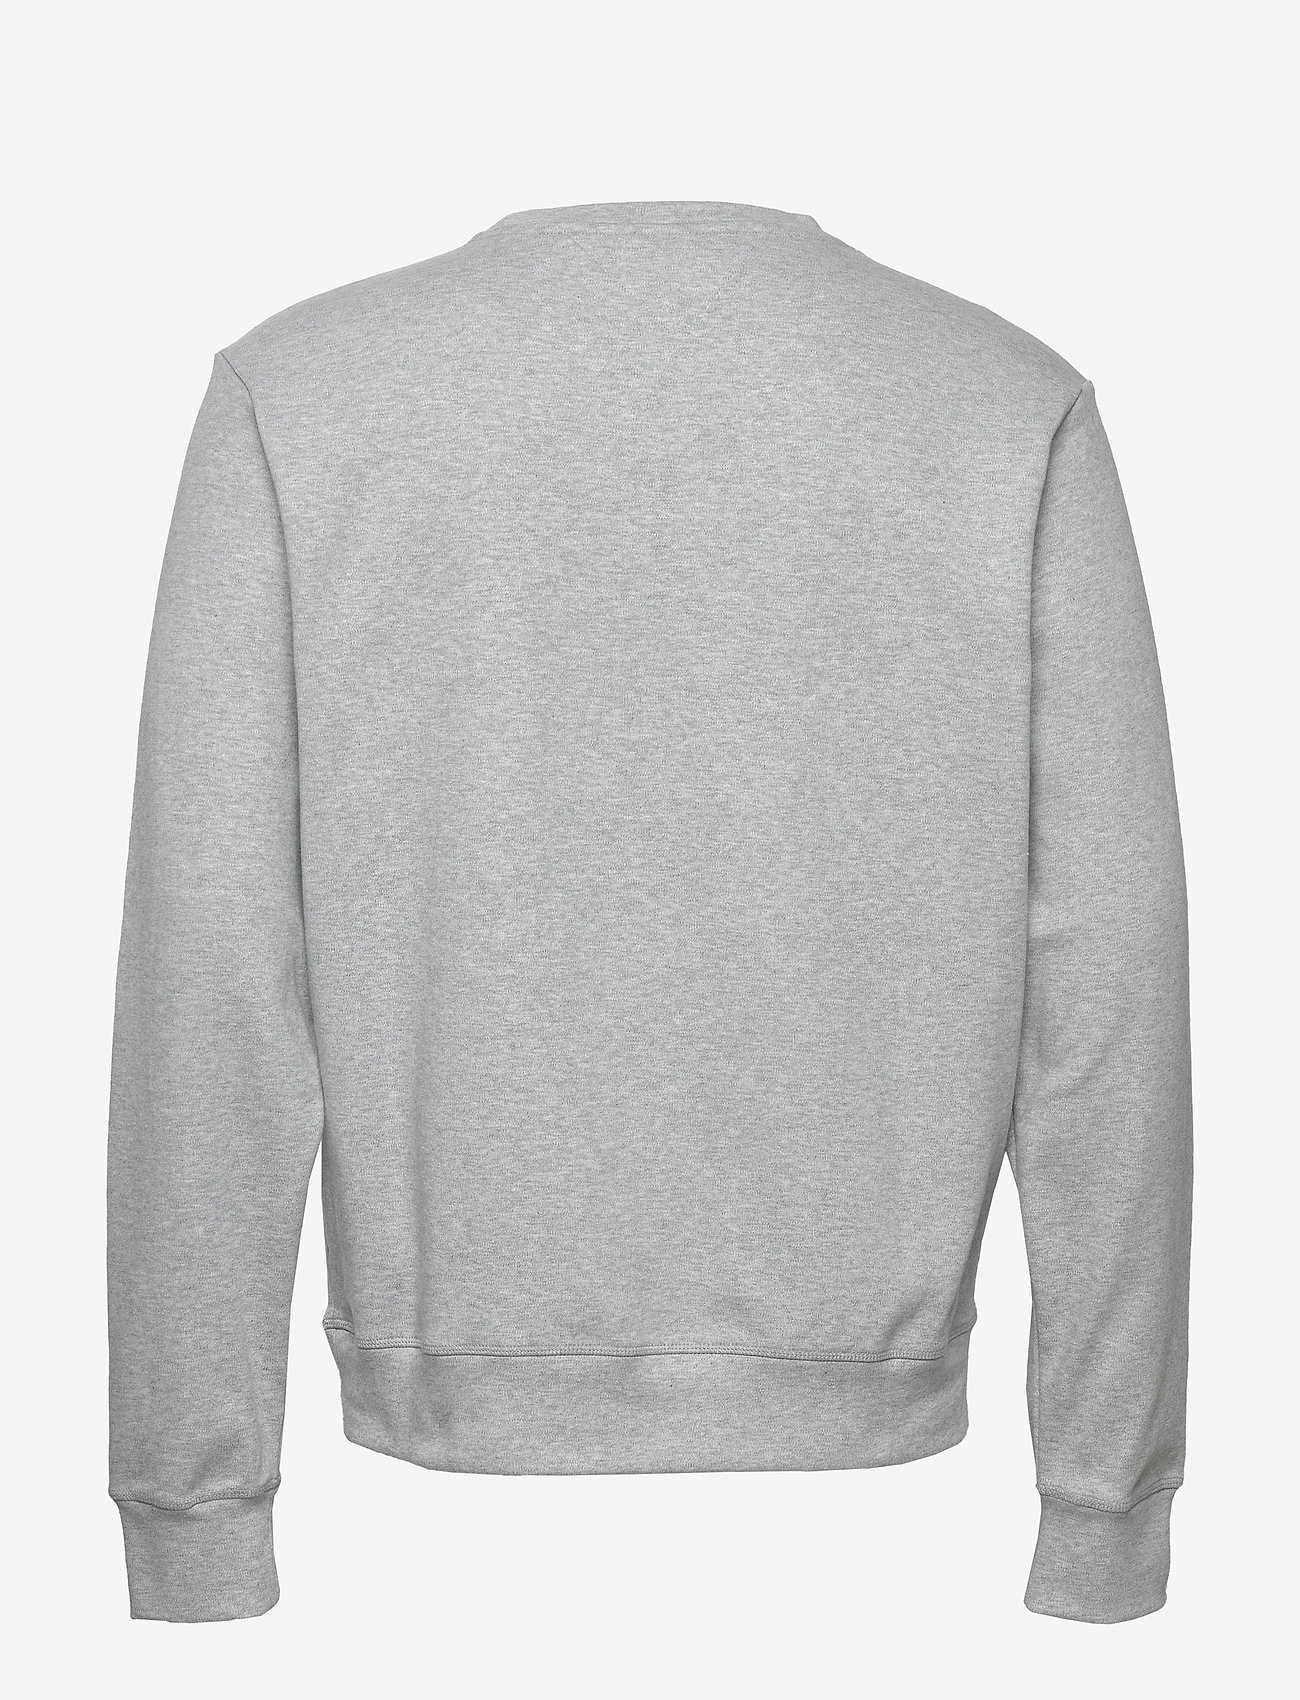 Tommy Hilfiger - TRACK TOP LWK - sweatshirts - grey heather